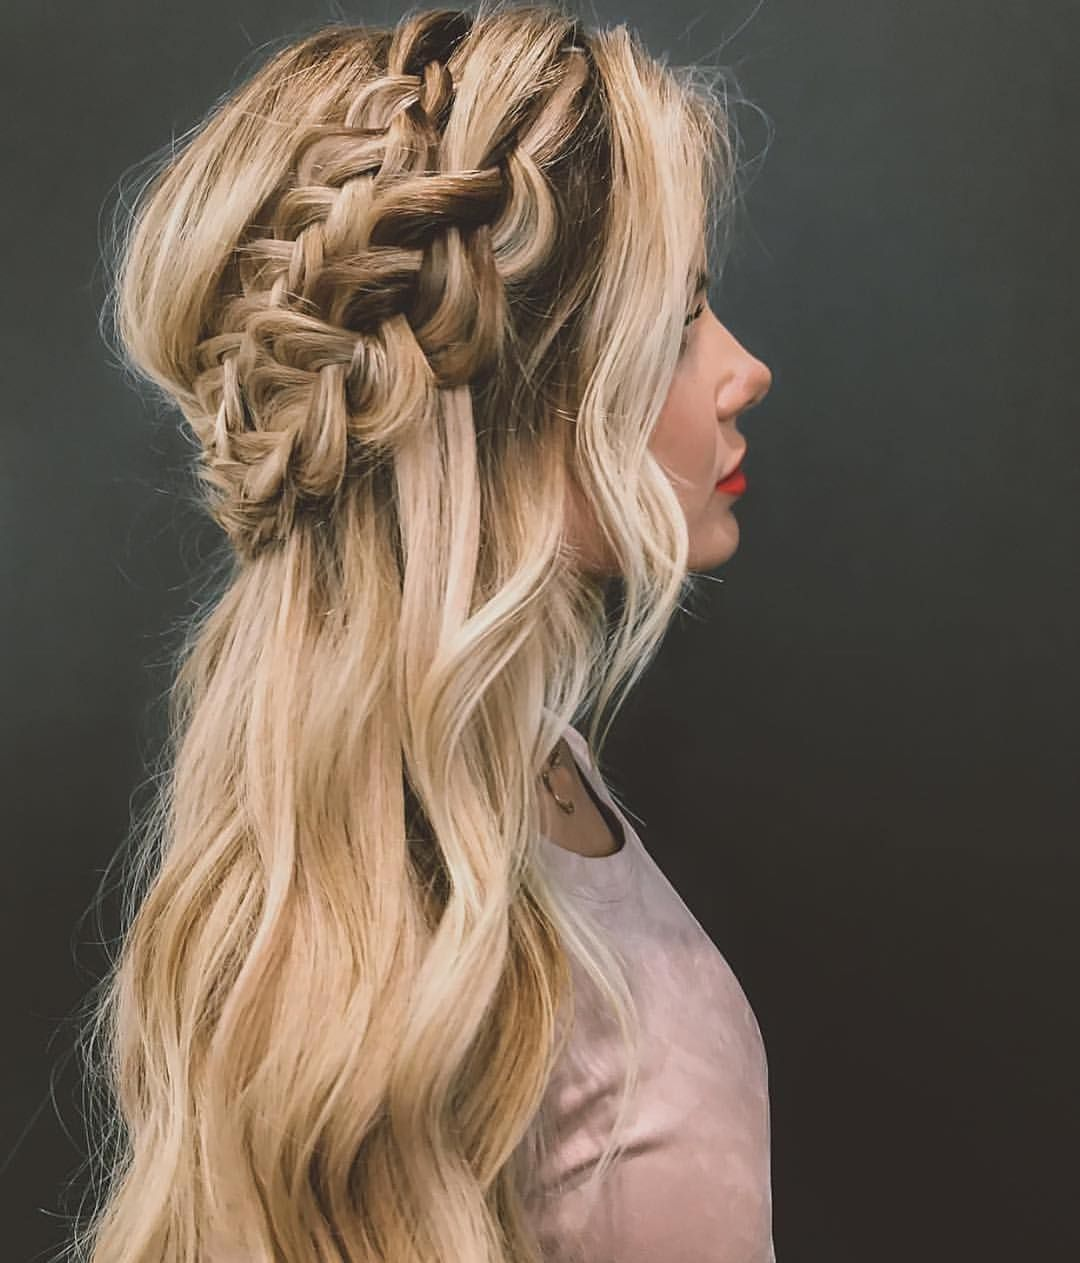 For Me - Perfect Hair For Staying At Home